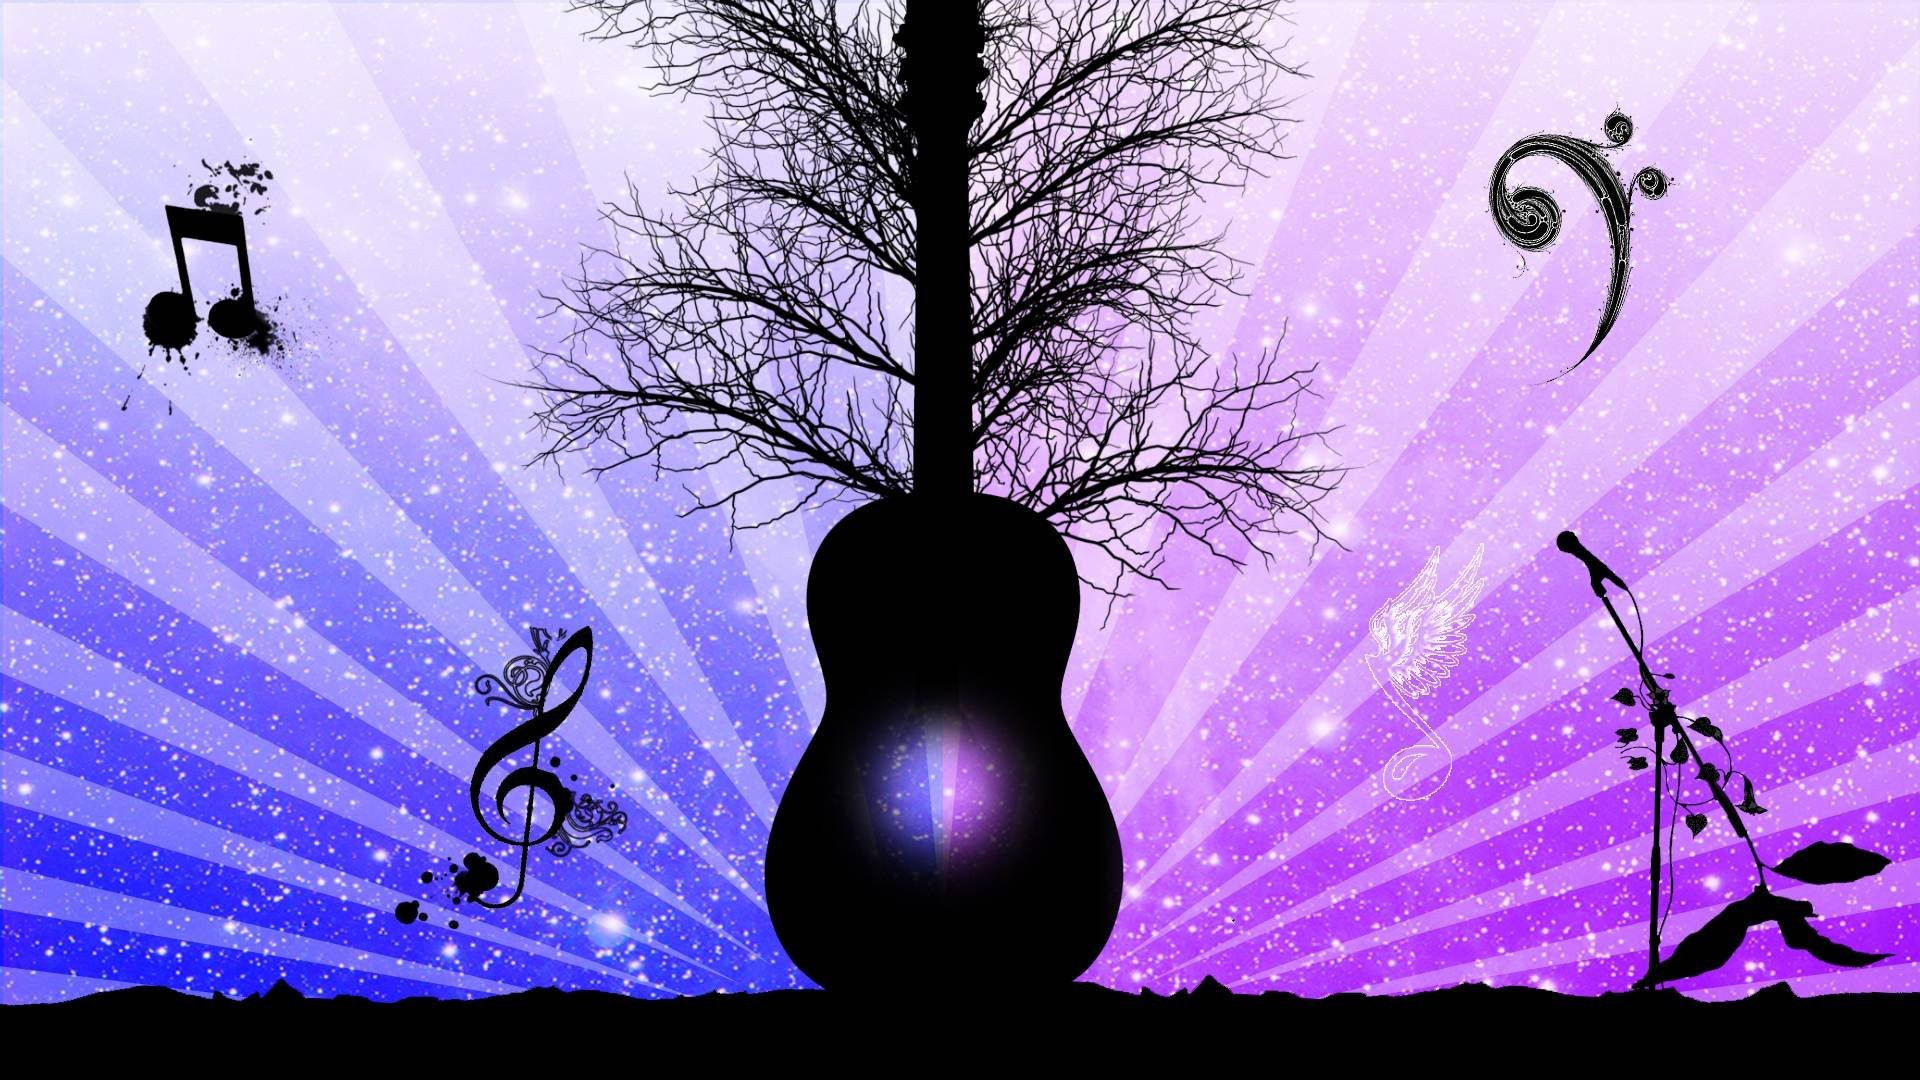 Music background download free hd wallpapers for - Music hd wallpapers free download ...